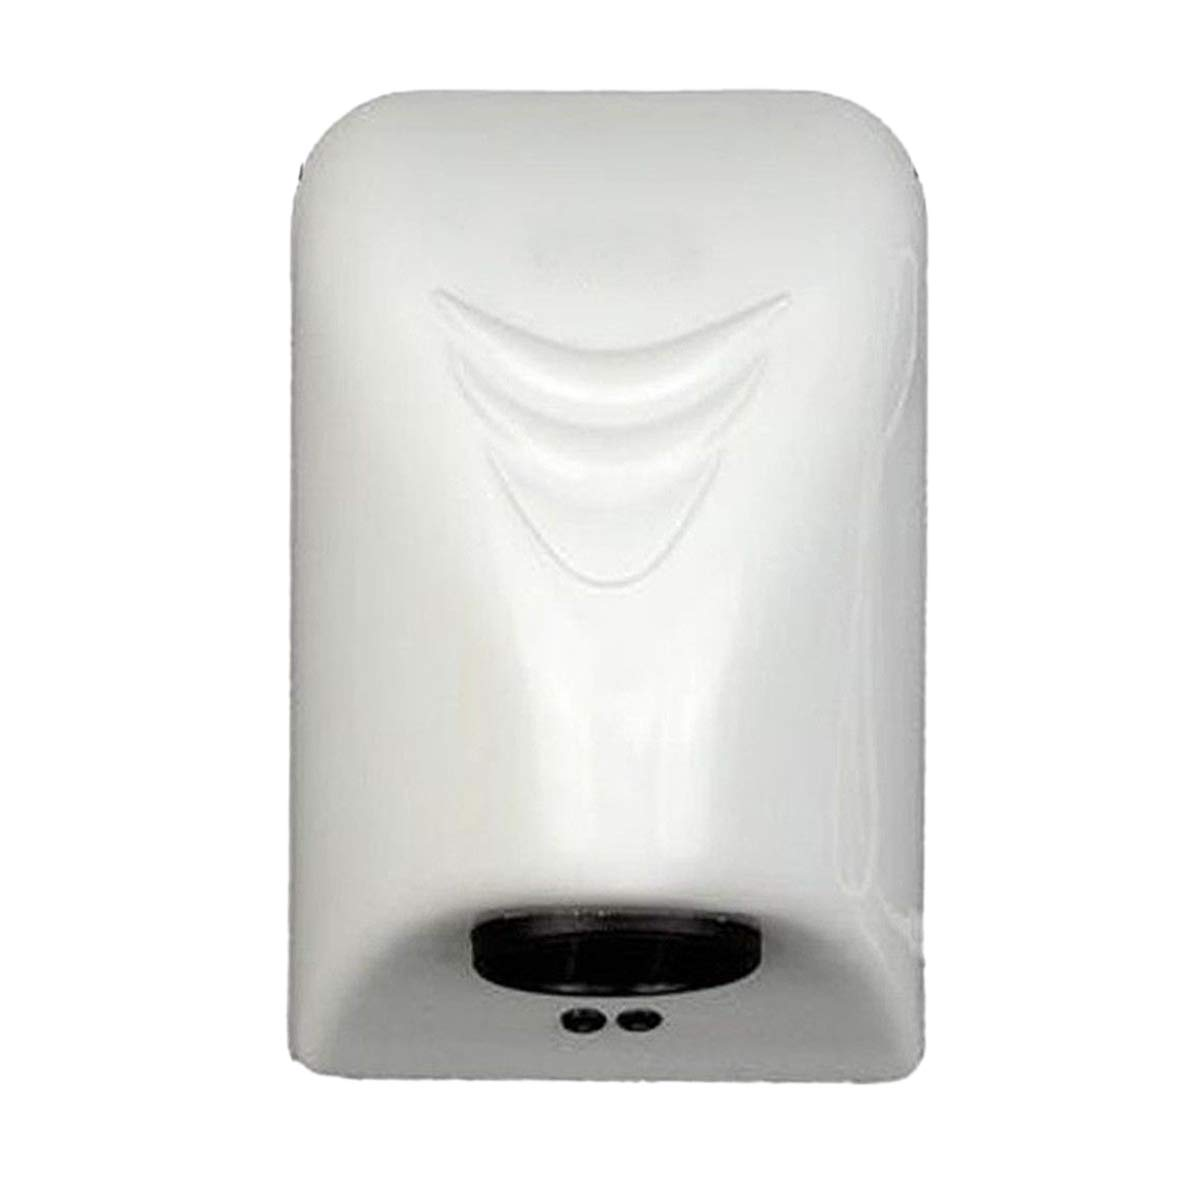 TOOGOO 1000W Hand Dryer Household Hotel Hand Dryer Bathroom Hand Dryer Electric Automatic Induction Hands Drying Device Us Plug